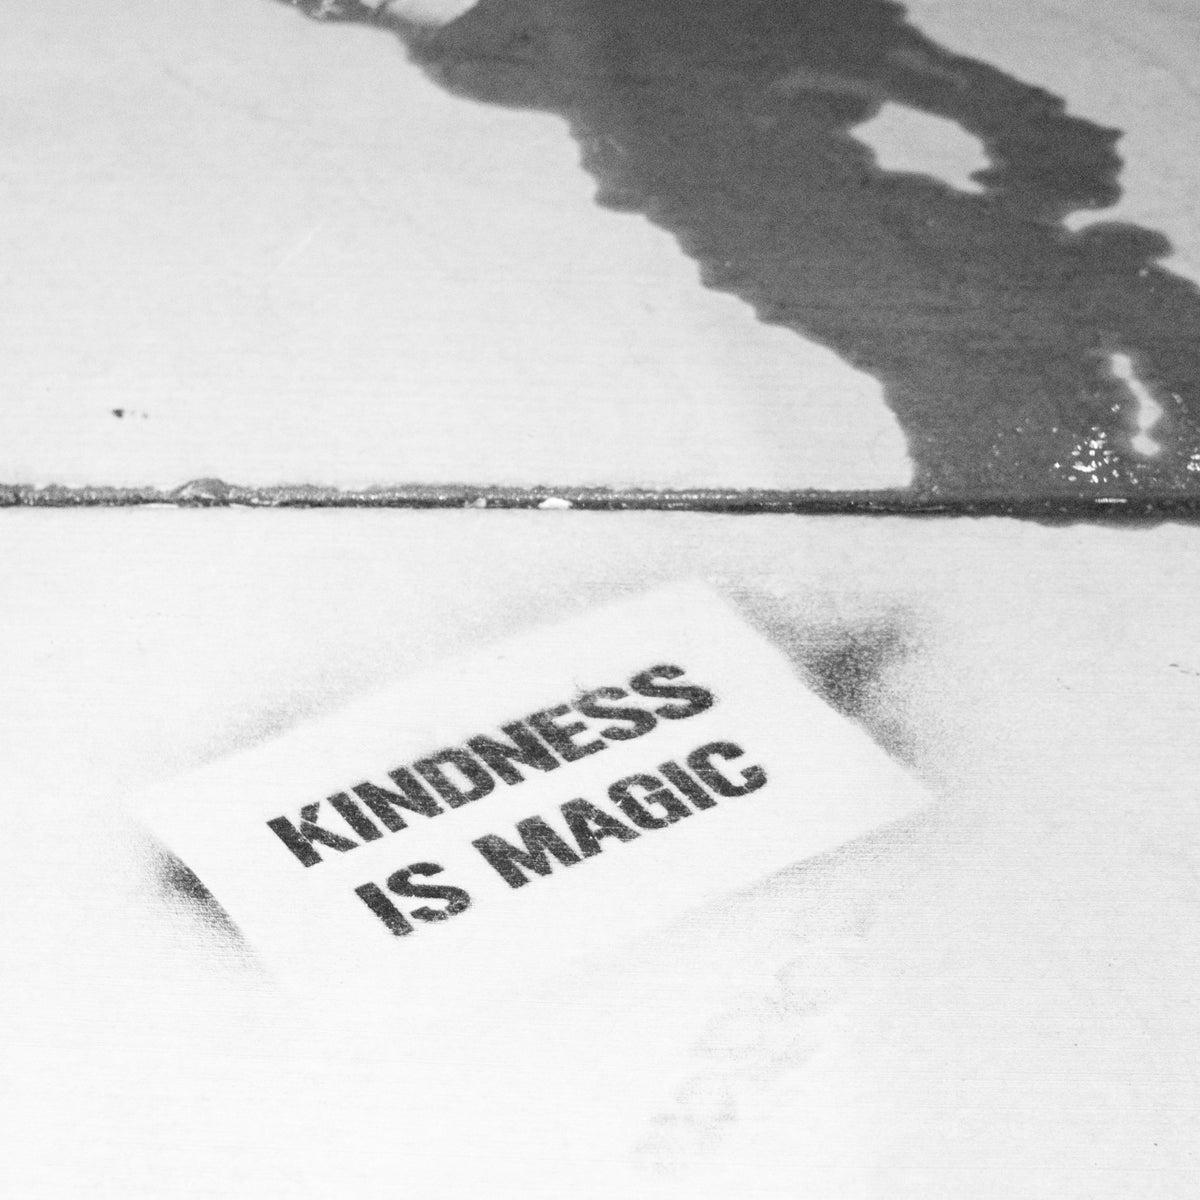 It's Nice To Be Nice - Kindness Boosts Mental Wellbeing